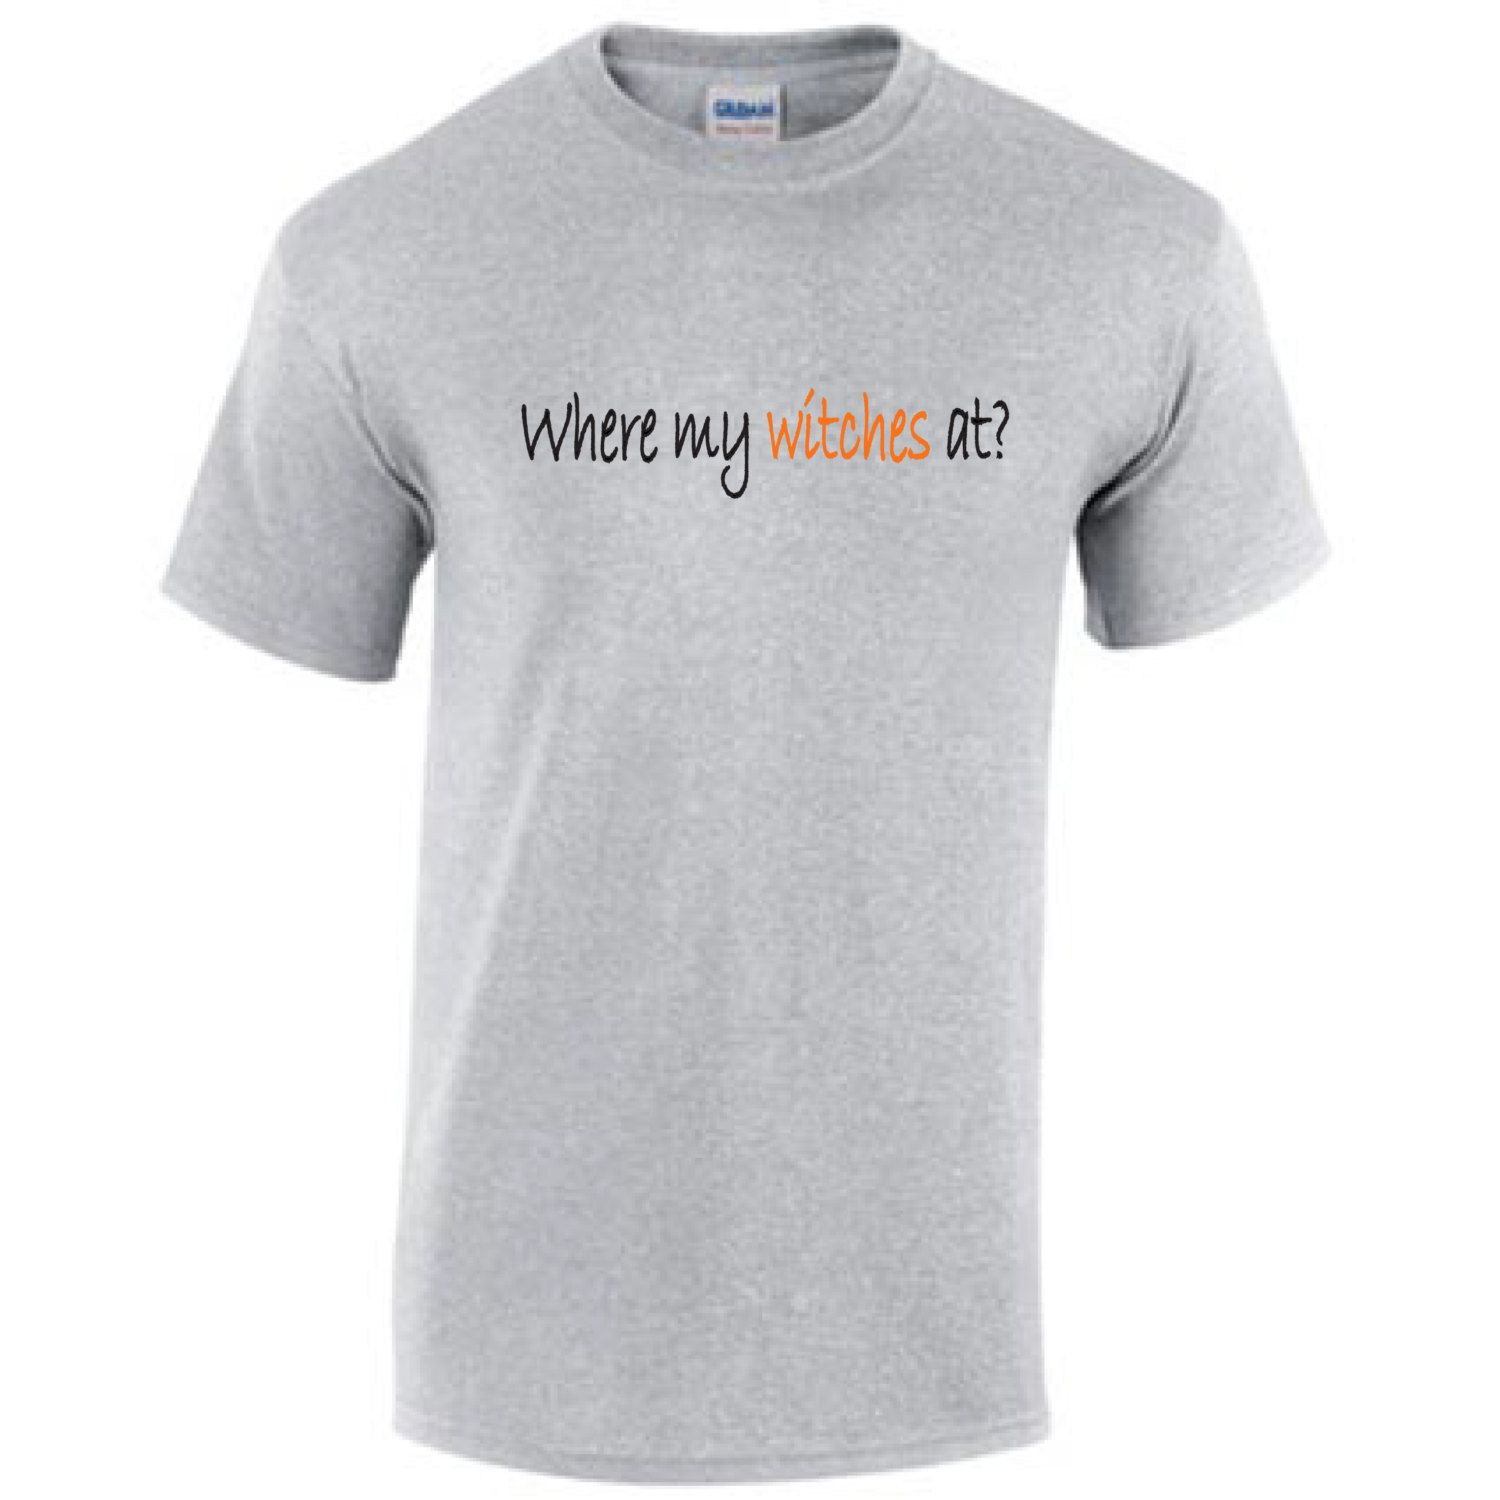 dca29c229872e Funny Shirt. Where my witches at? Halloween tee. Witch tee. Humorous ...